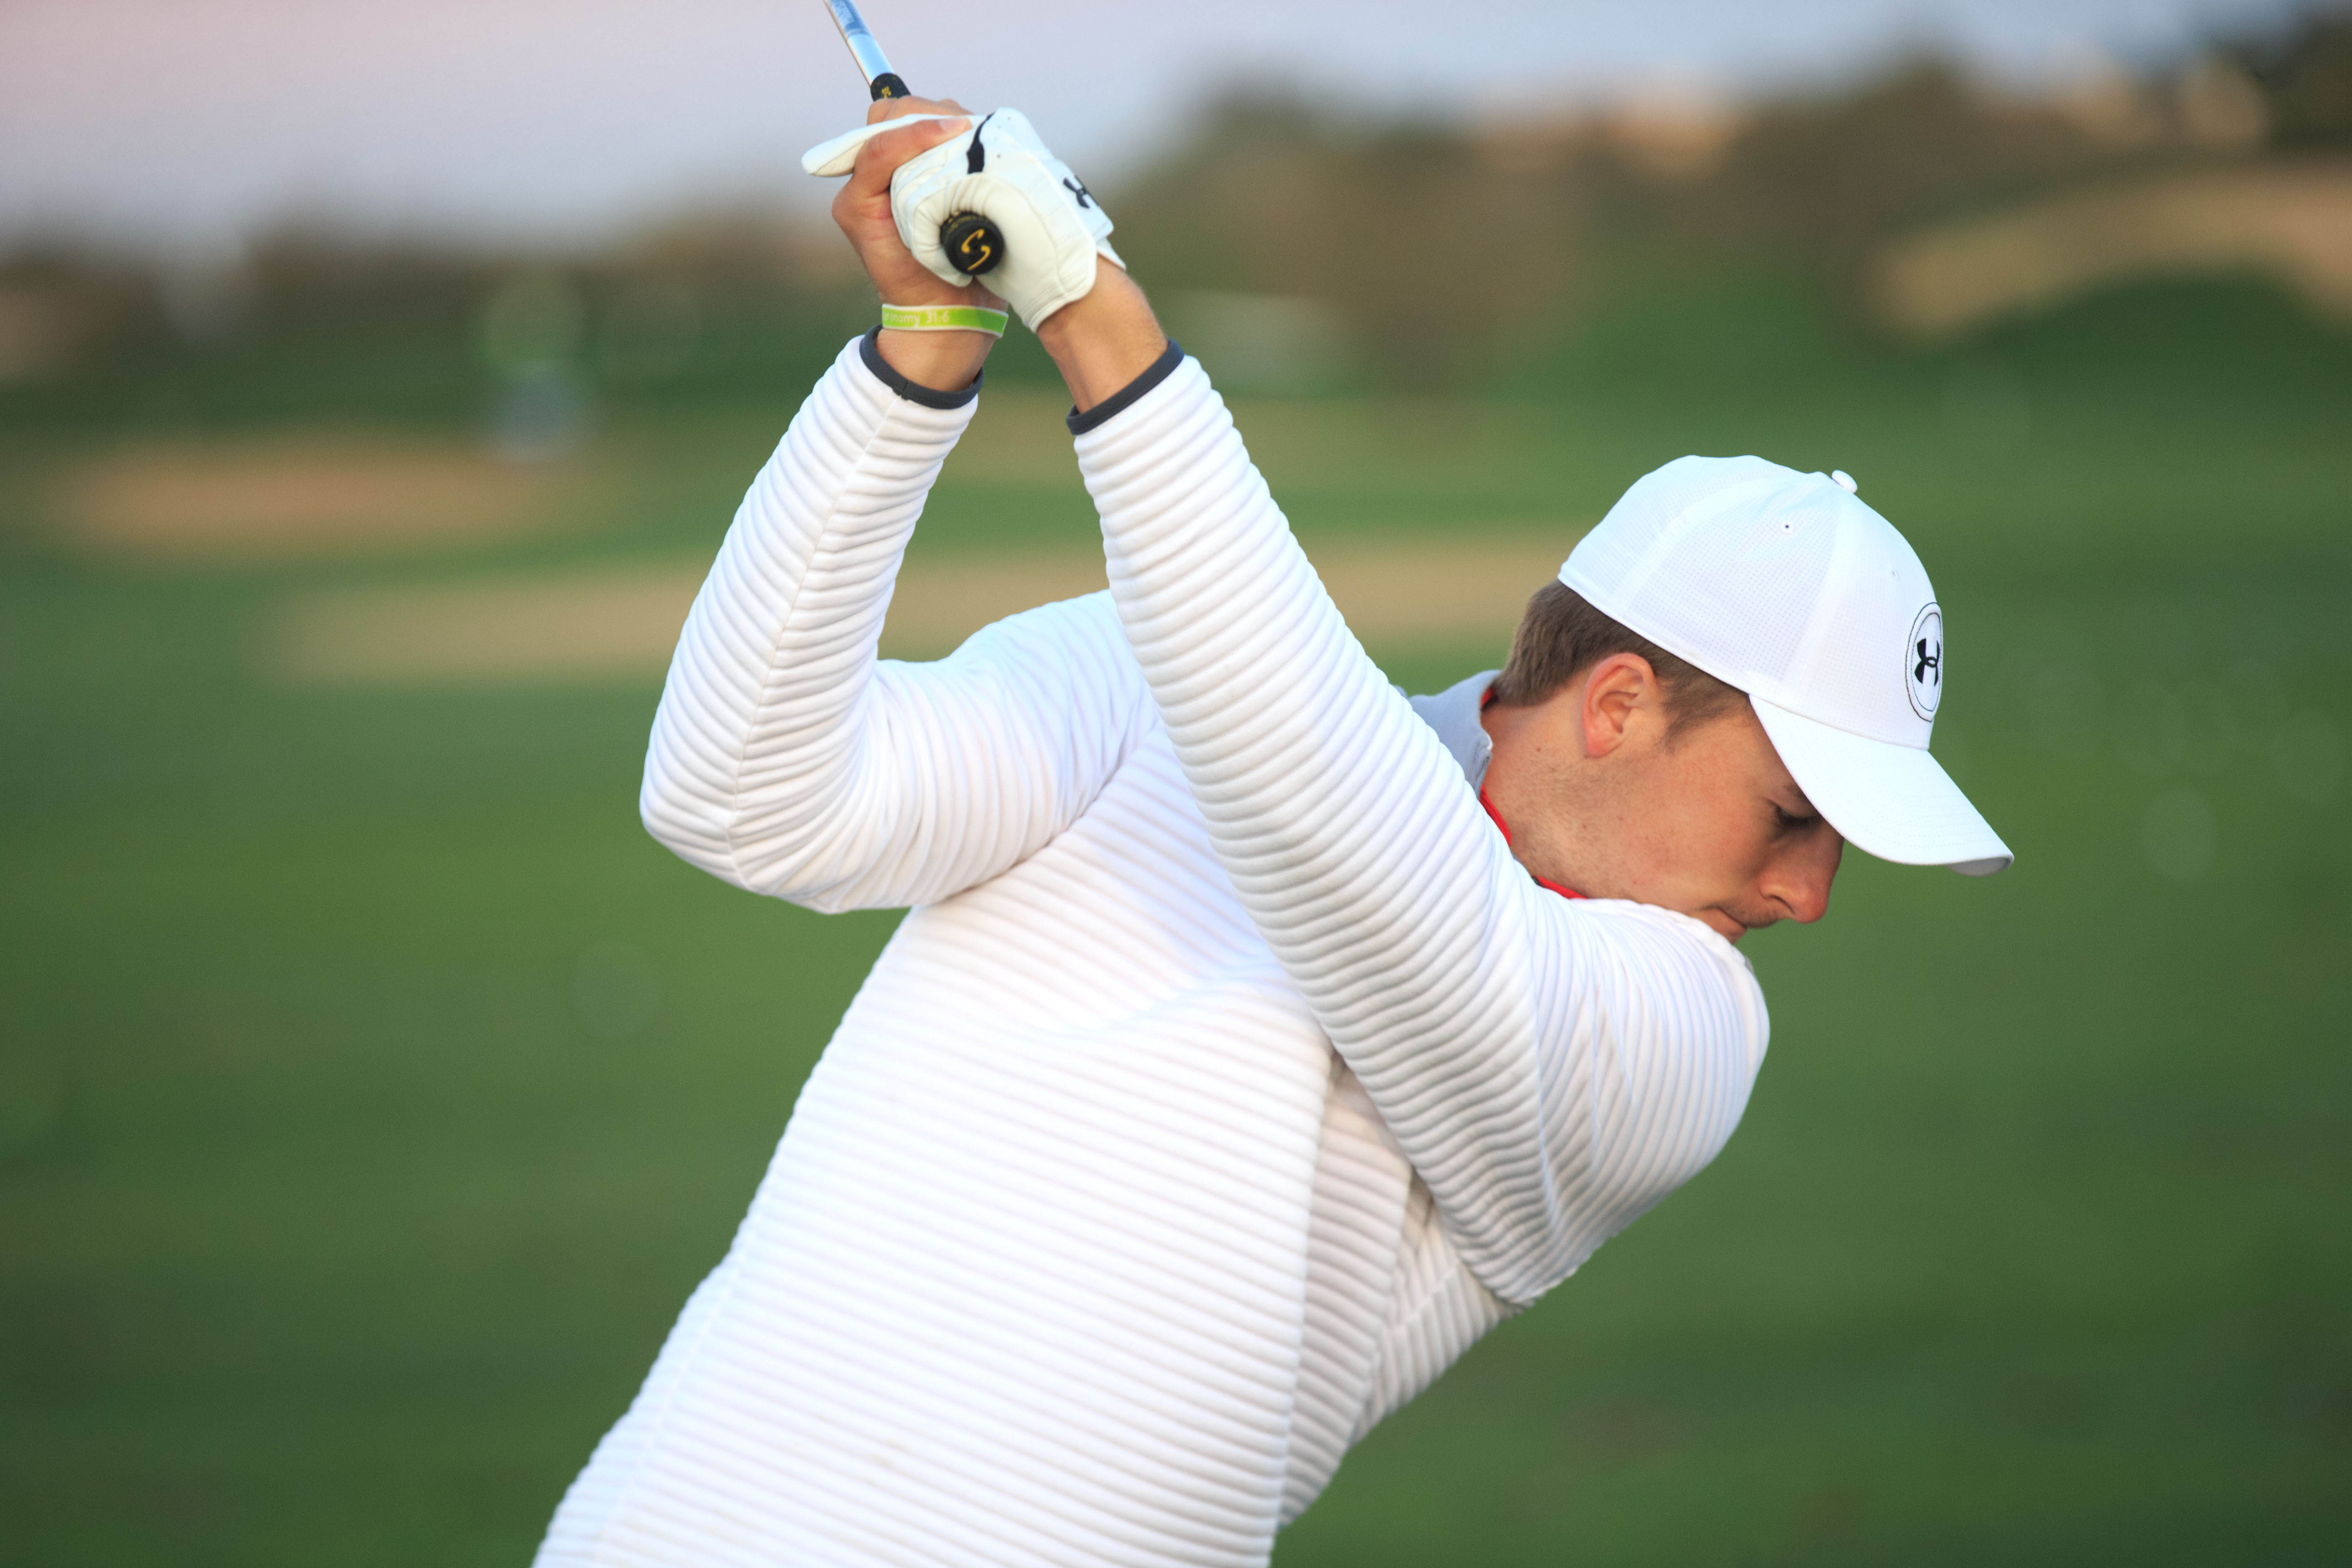 Feb 2, 2017; Scottsdale, AZ, USA; Jordan Spieth warms up on the practice range during the first round of the Waste Management Phoenix Open golf tournament at TPC Scottsdale. Mandatory Credit: Allan Henry-USA TODAY Sports